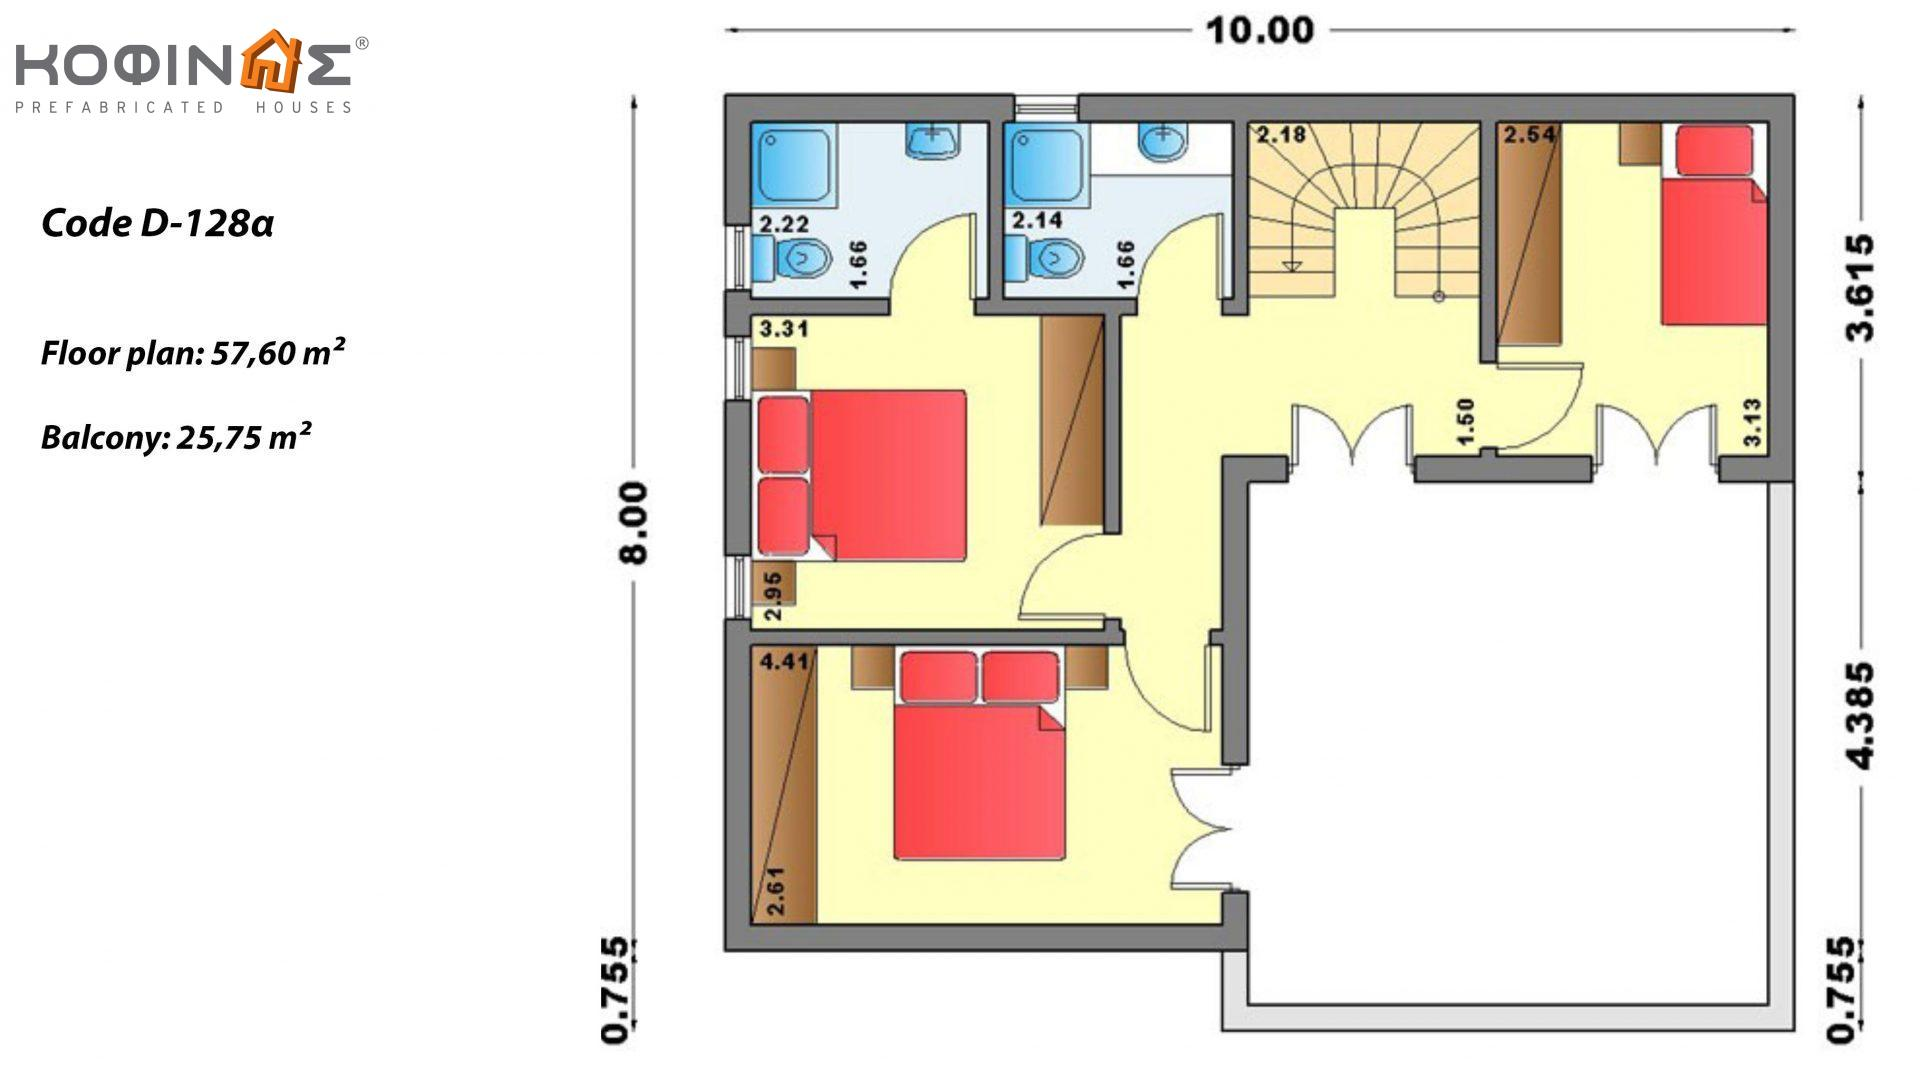 2-story house D-128a, total surface of 128,60 m²,roofed areas 14.37 m²,balconies 25.75 m²